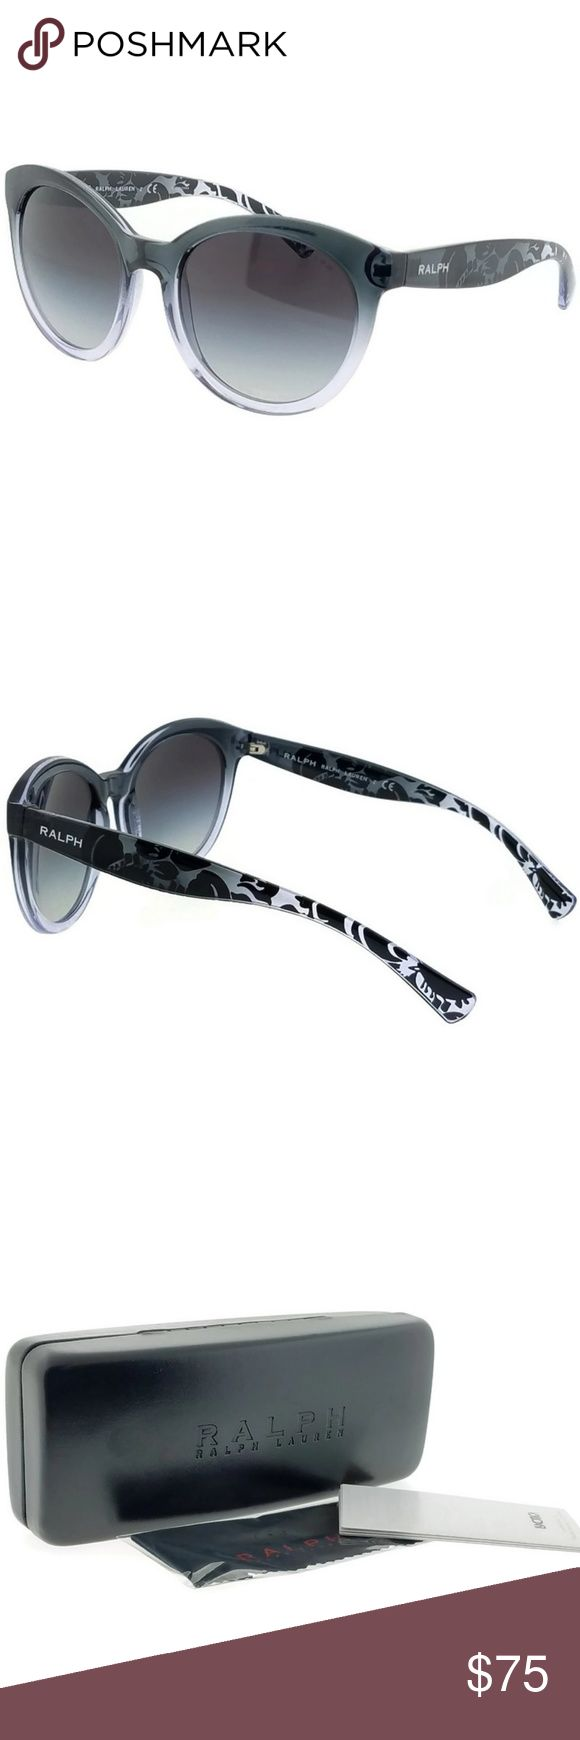 RA5211-151111 Oval Women's Grey Frame Sunglasses New gorgeous Ralph Lauren RA5211-151111 grey frame with grey lens and 53mm sunglasses with stylish look. The Ralph Lauren brand has been creating sophisticated and timeless styles since its inception in 1970. Ralph Lauren designs celebrate the refined luxury and understated elegance that is at the heart of American fashion. Ralph Lauren makes eyewear that is attractive and elegant, and Ralph Lauren distinctive luxury is reflected in every…